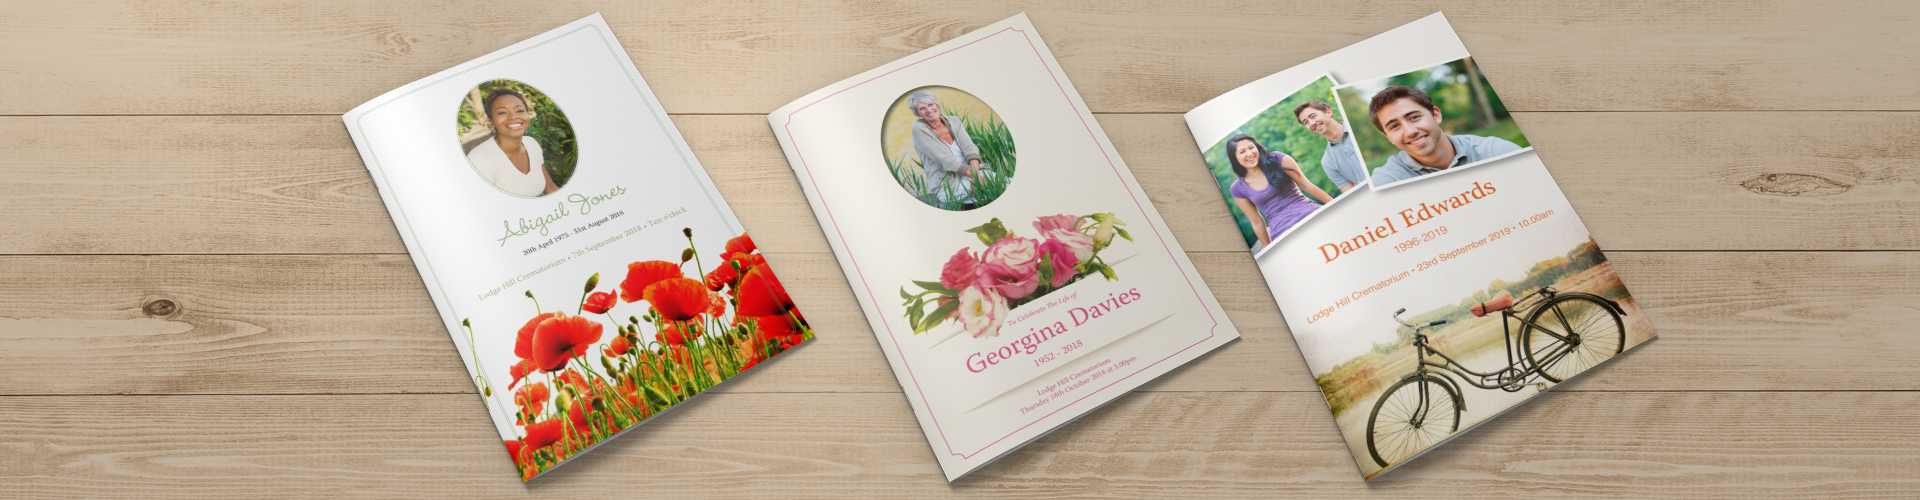 funeral order of service cards